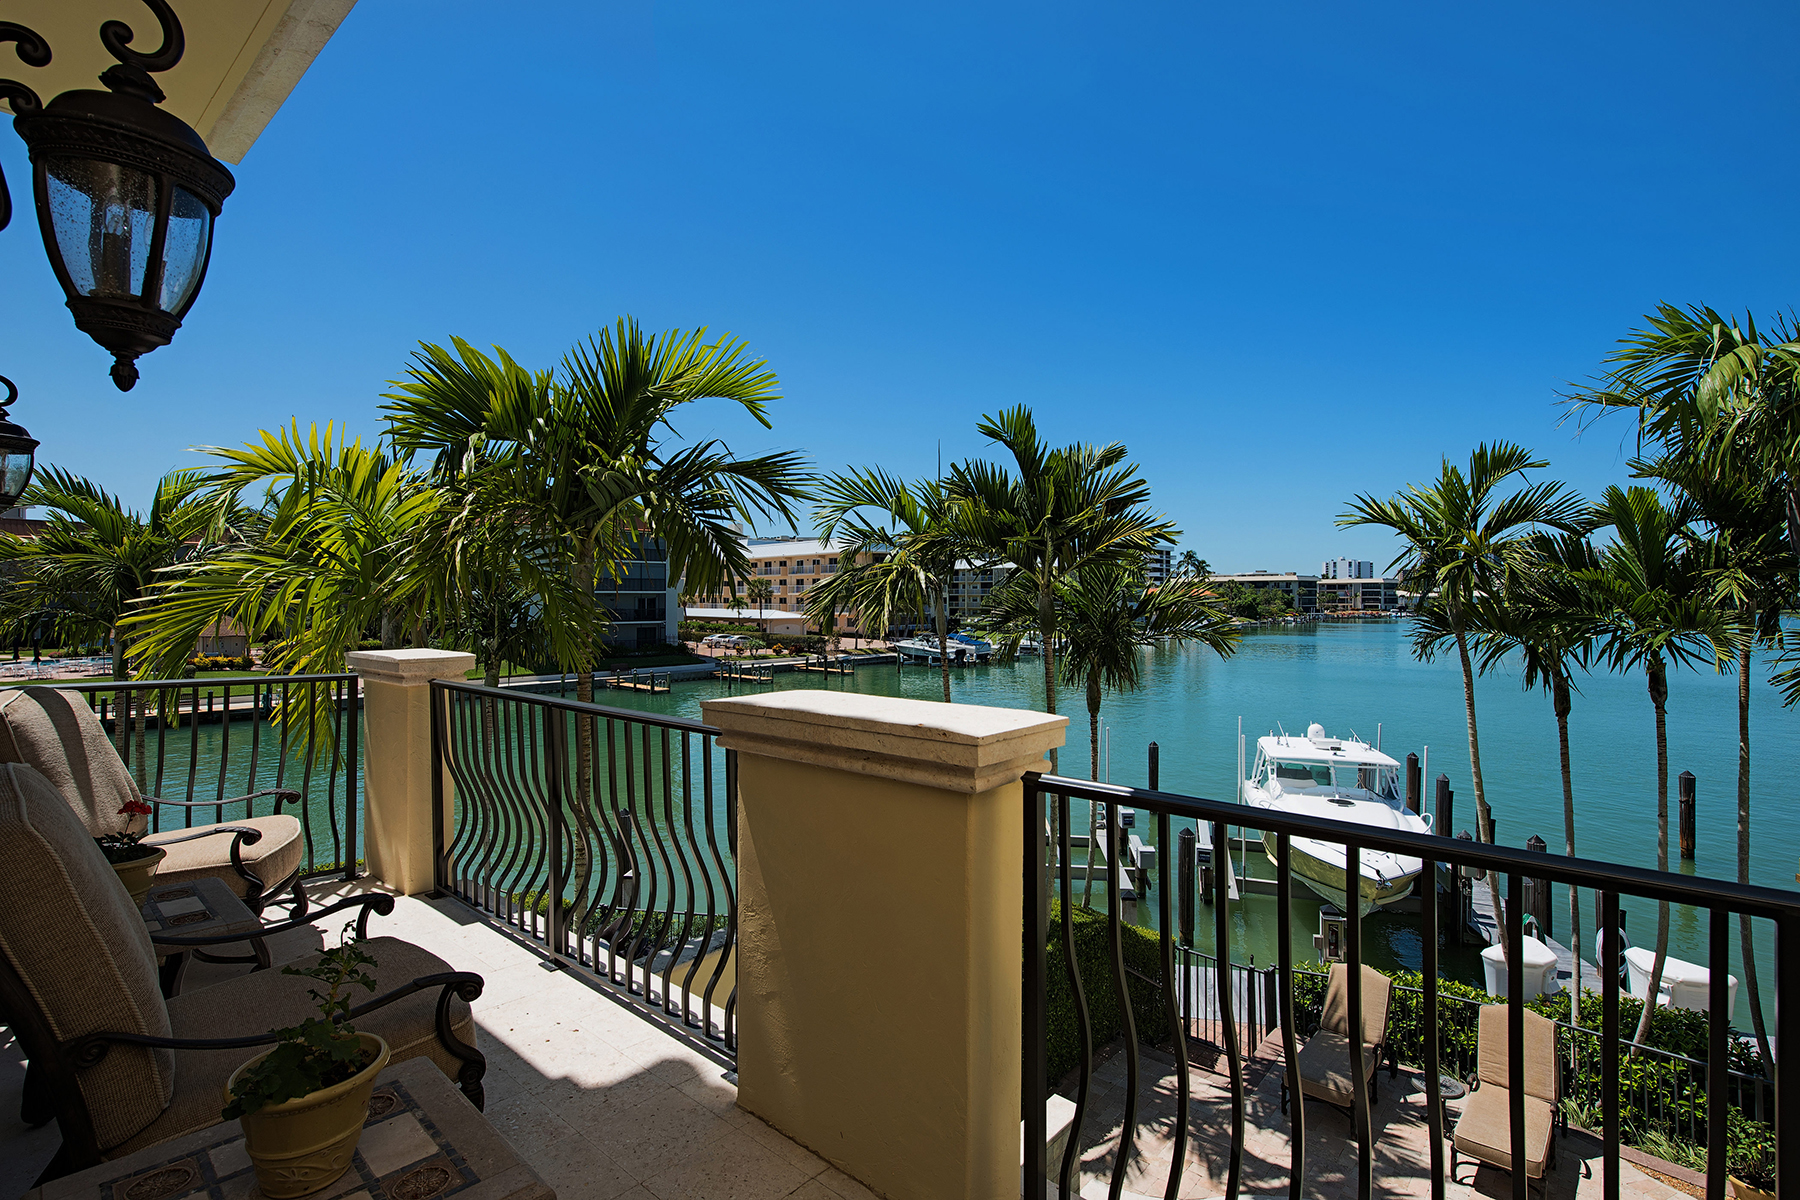 Townhouse for Sale at MOORINGS - VISTA ROYALE 231 Harbour Dr 5 Naples, Florida 34103 United States